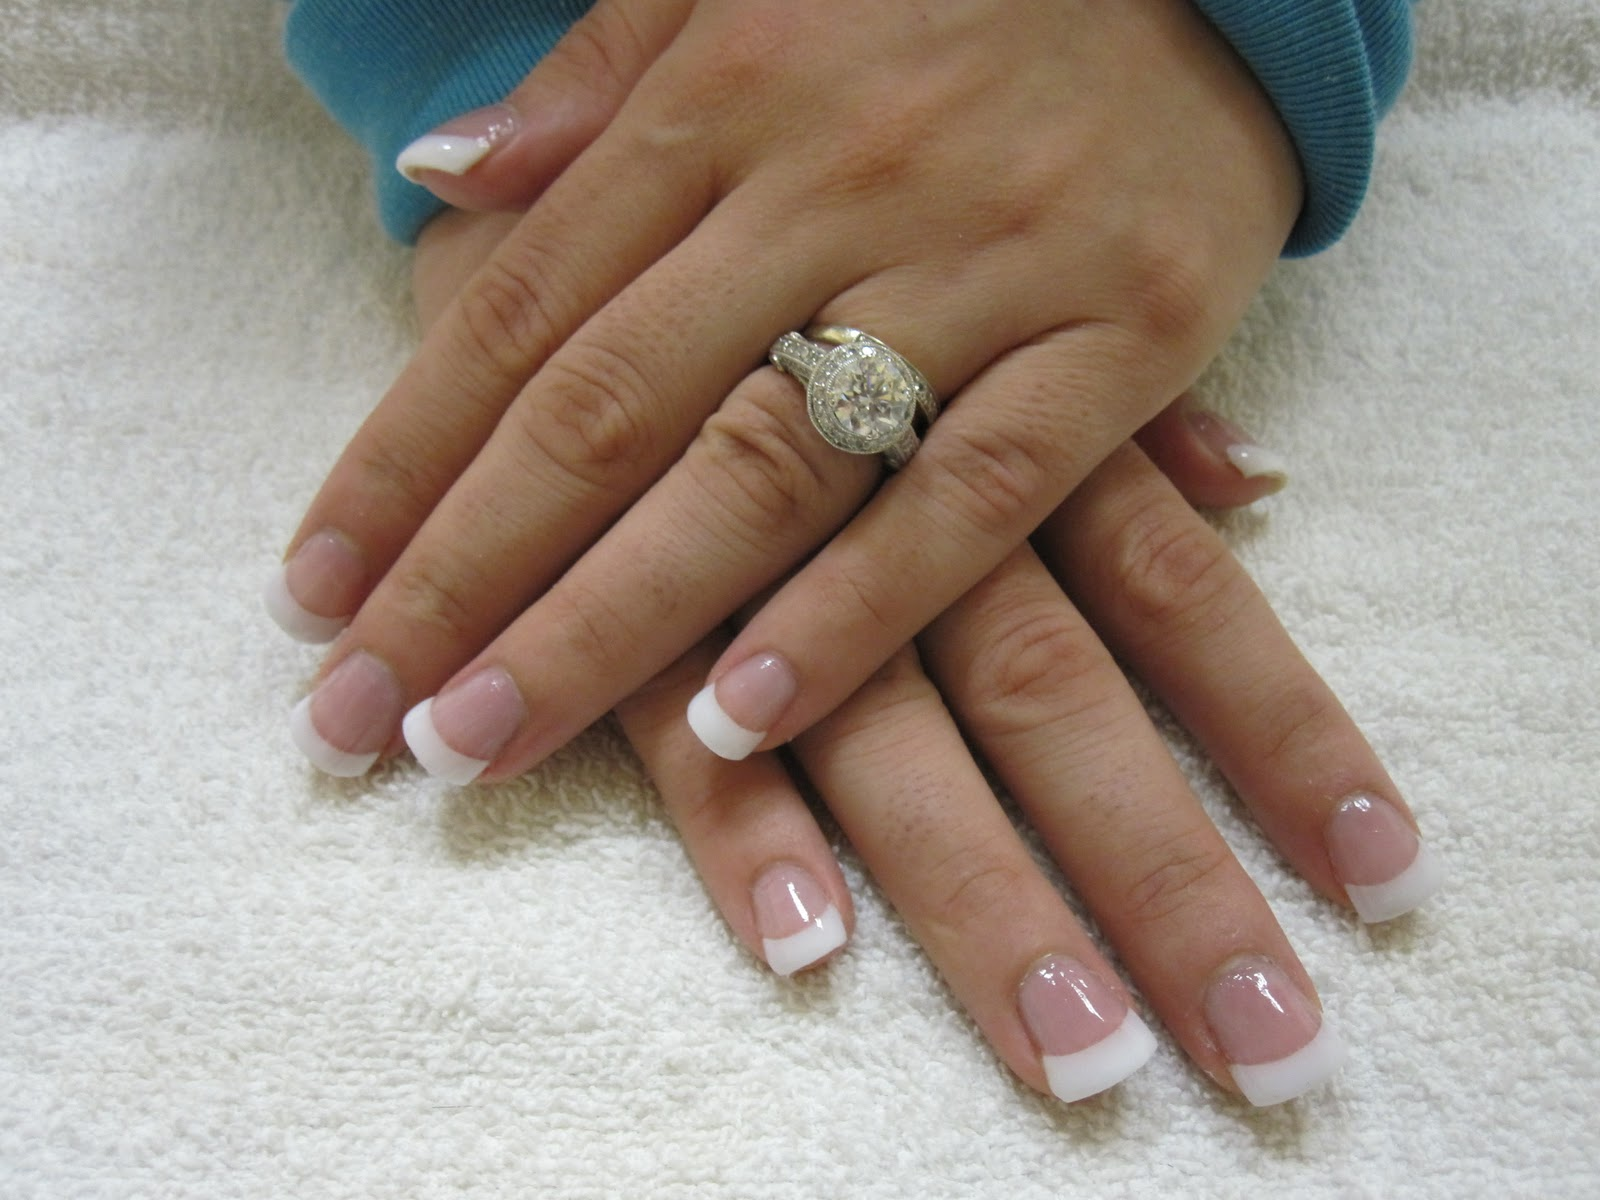 Nail Art Las Vegas: Pink and White Nails Las Vegas